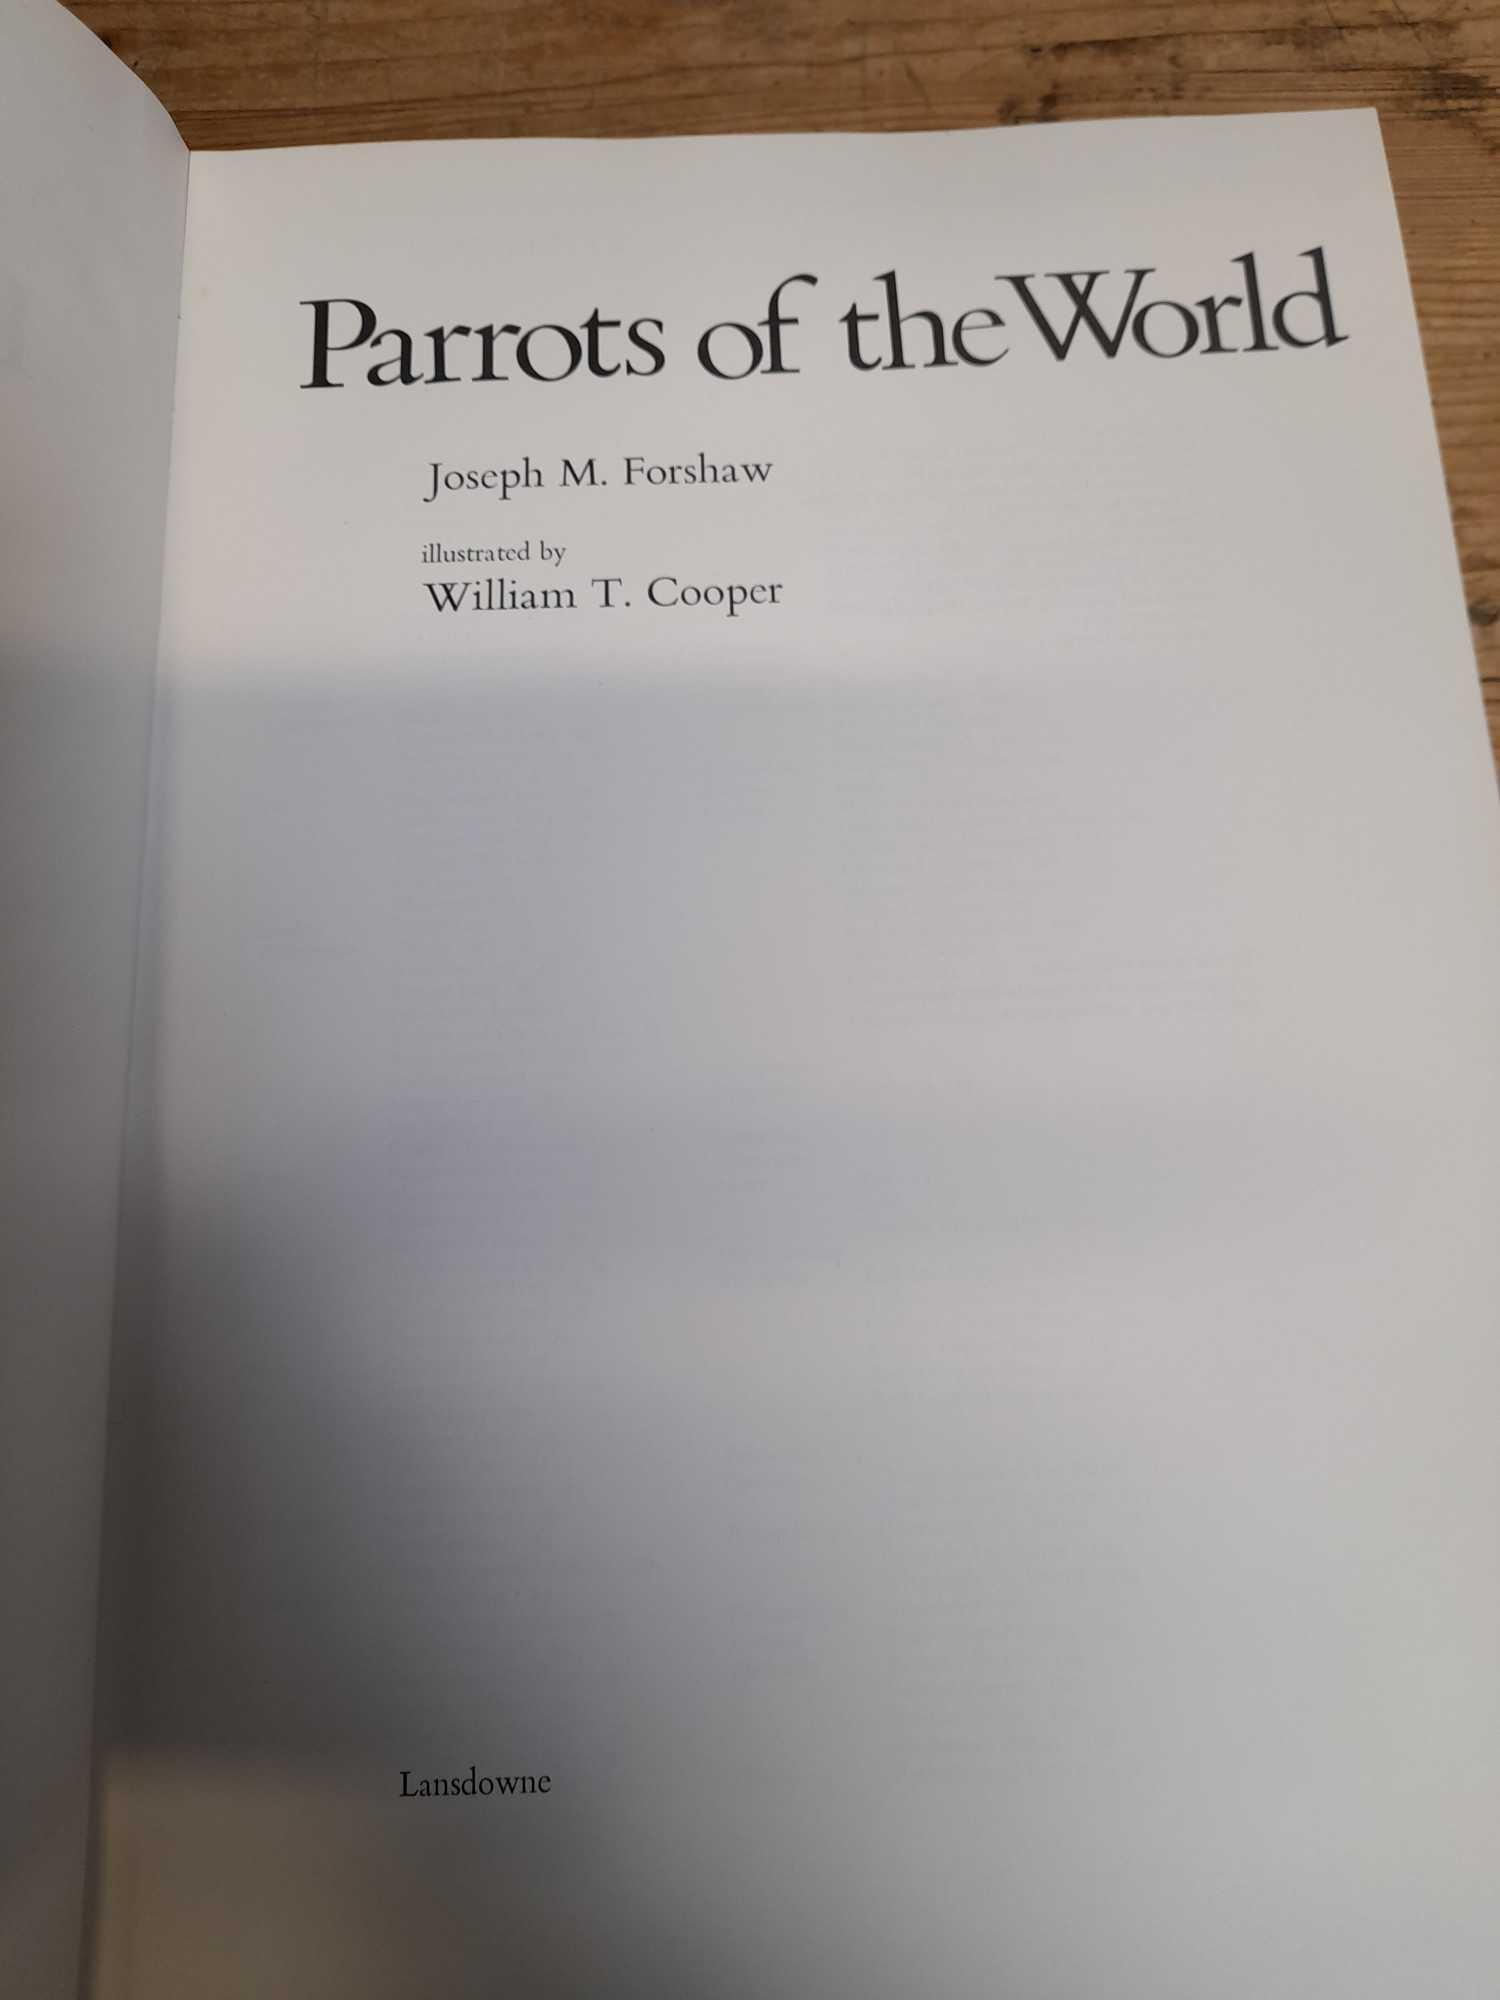 3 PARROT BOOKS - Image 15 of 20